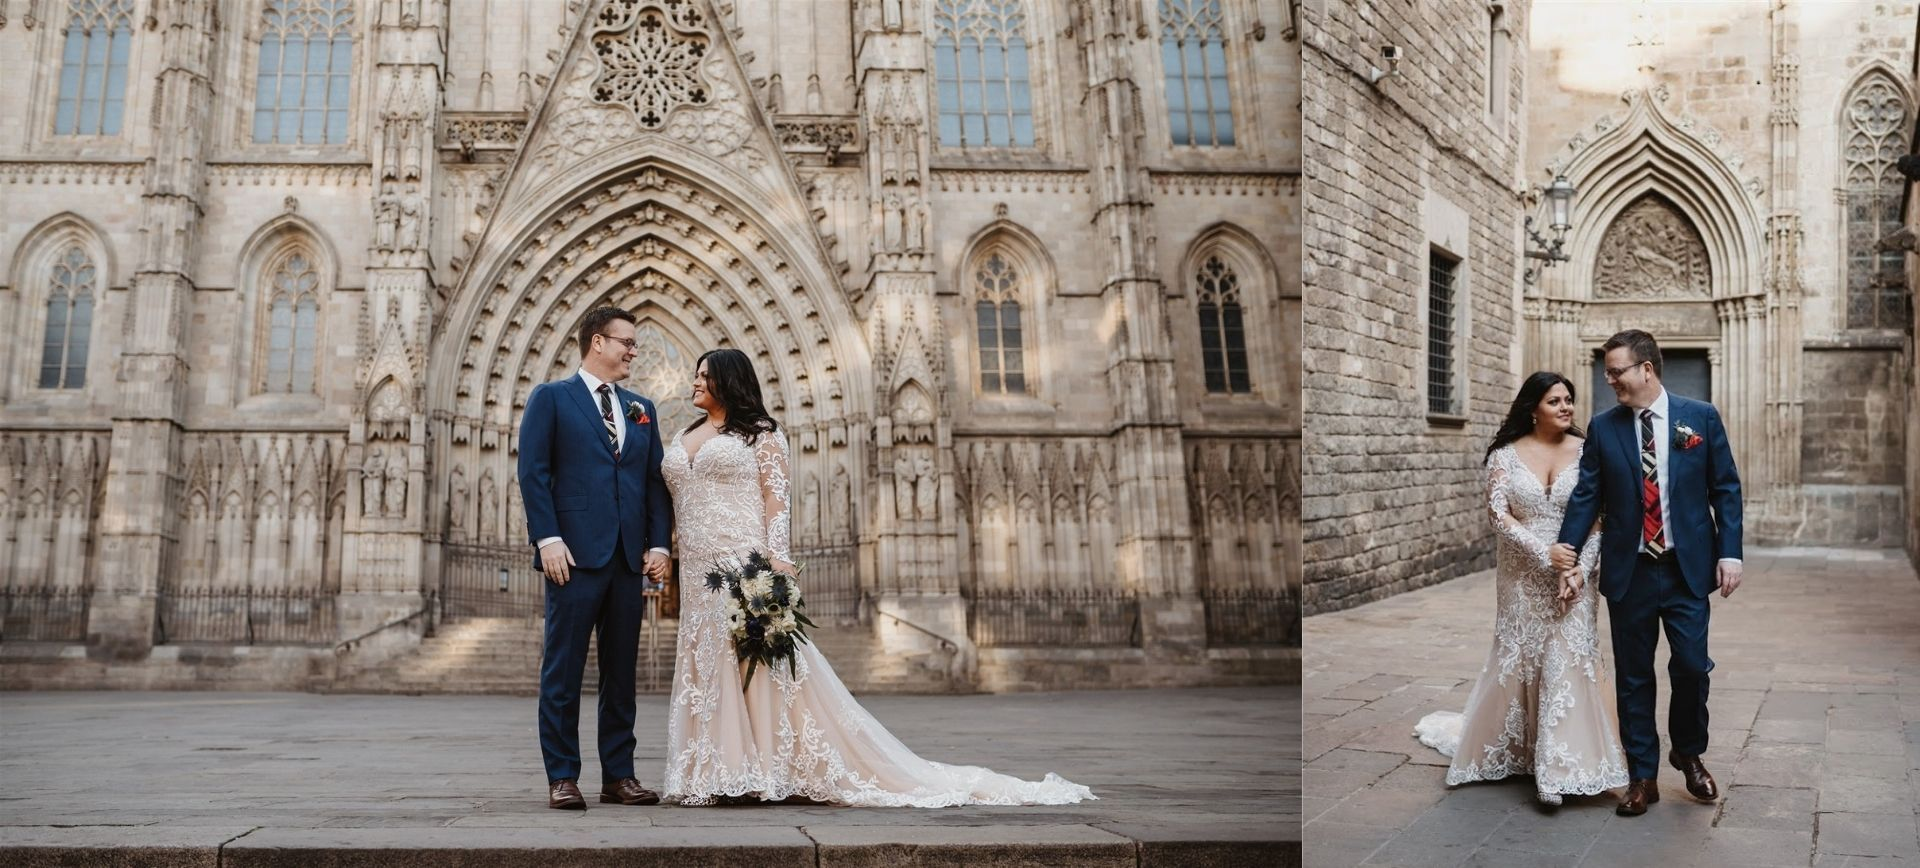 Barcelona Elopement Package - Gothic Quater & Parc de la Ciutadella Wedding